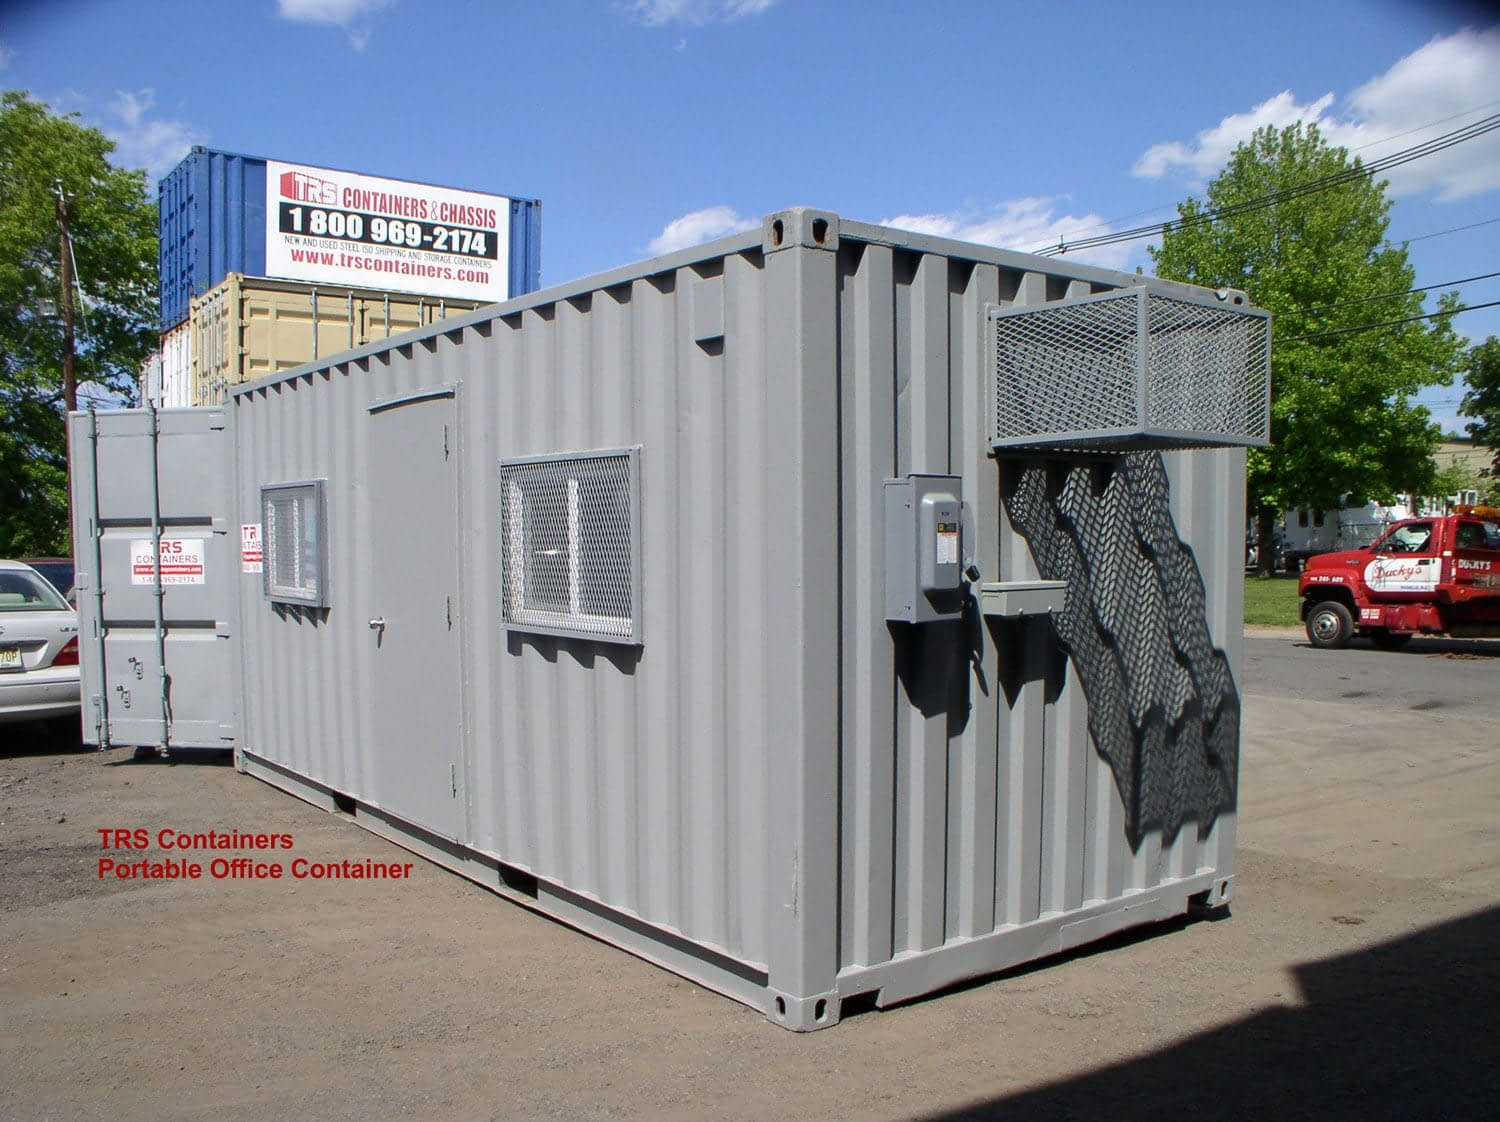 TRS Containers modifies 20 foot long container into portable office space. Equiped for the comfort and safety of staff